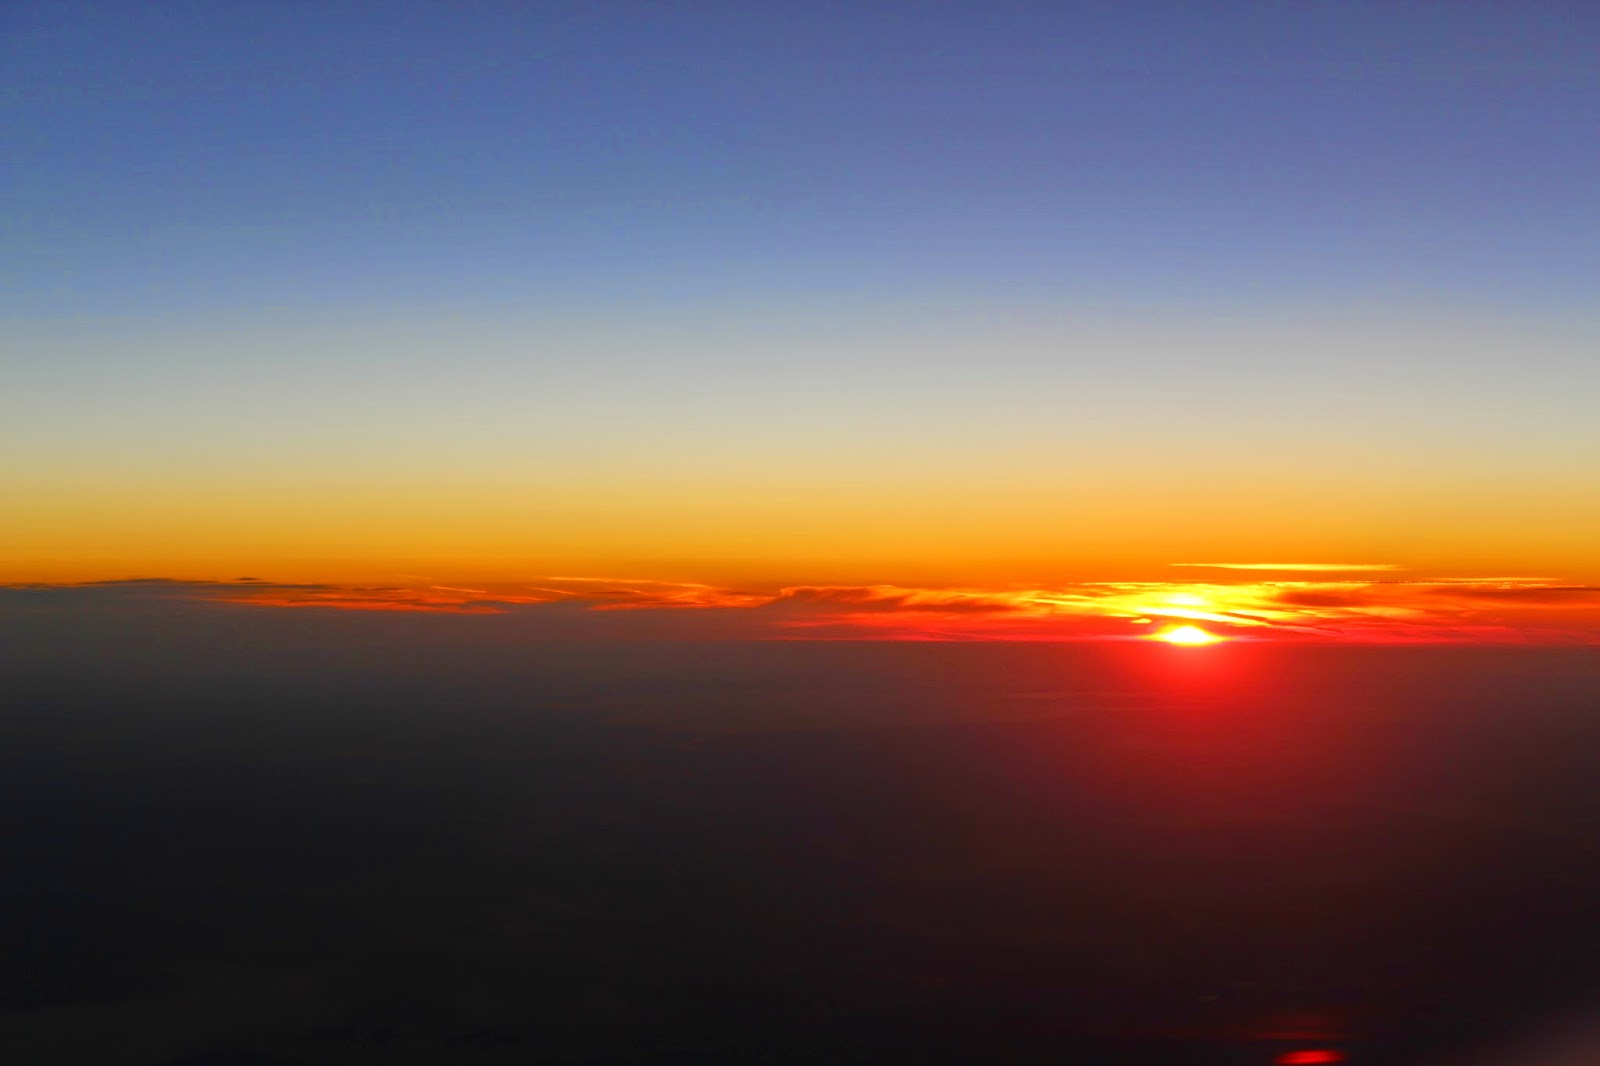 Sunrise on my flight to Moscow.